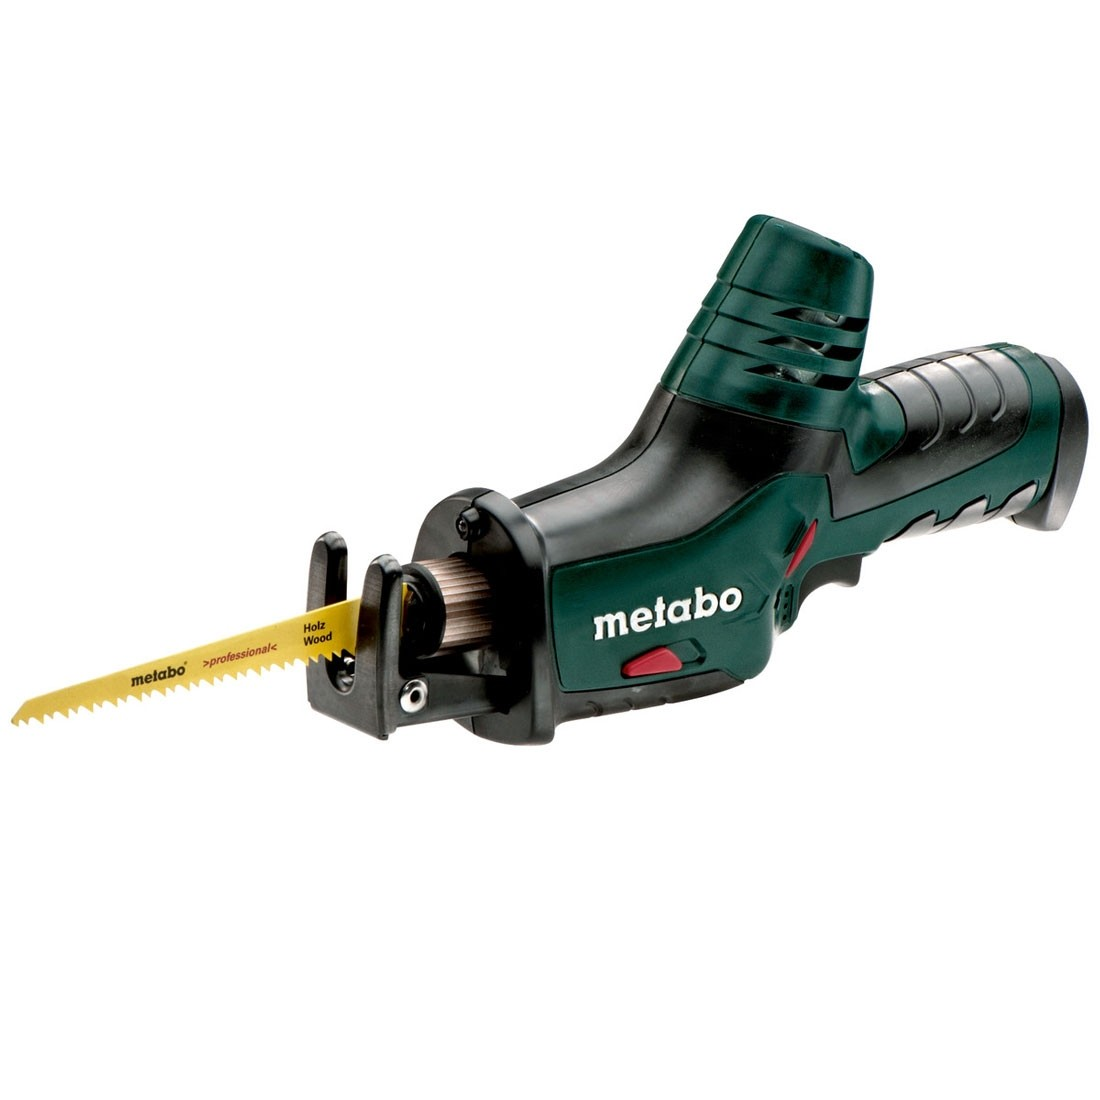 metabo powermaxx ase reciprocating saw body only. Black Bedroom Furniture Sets. Home Design Ideas